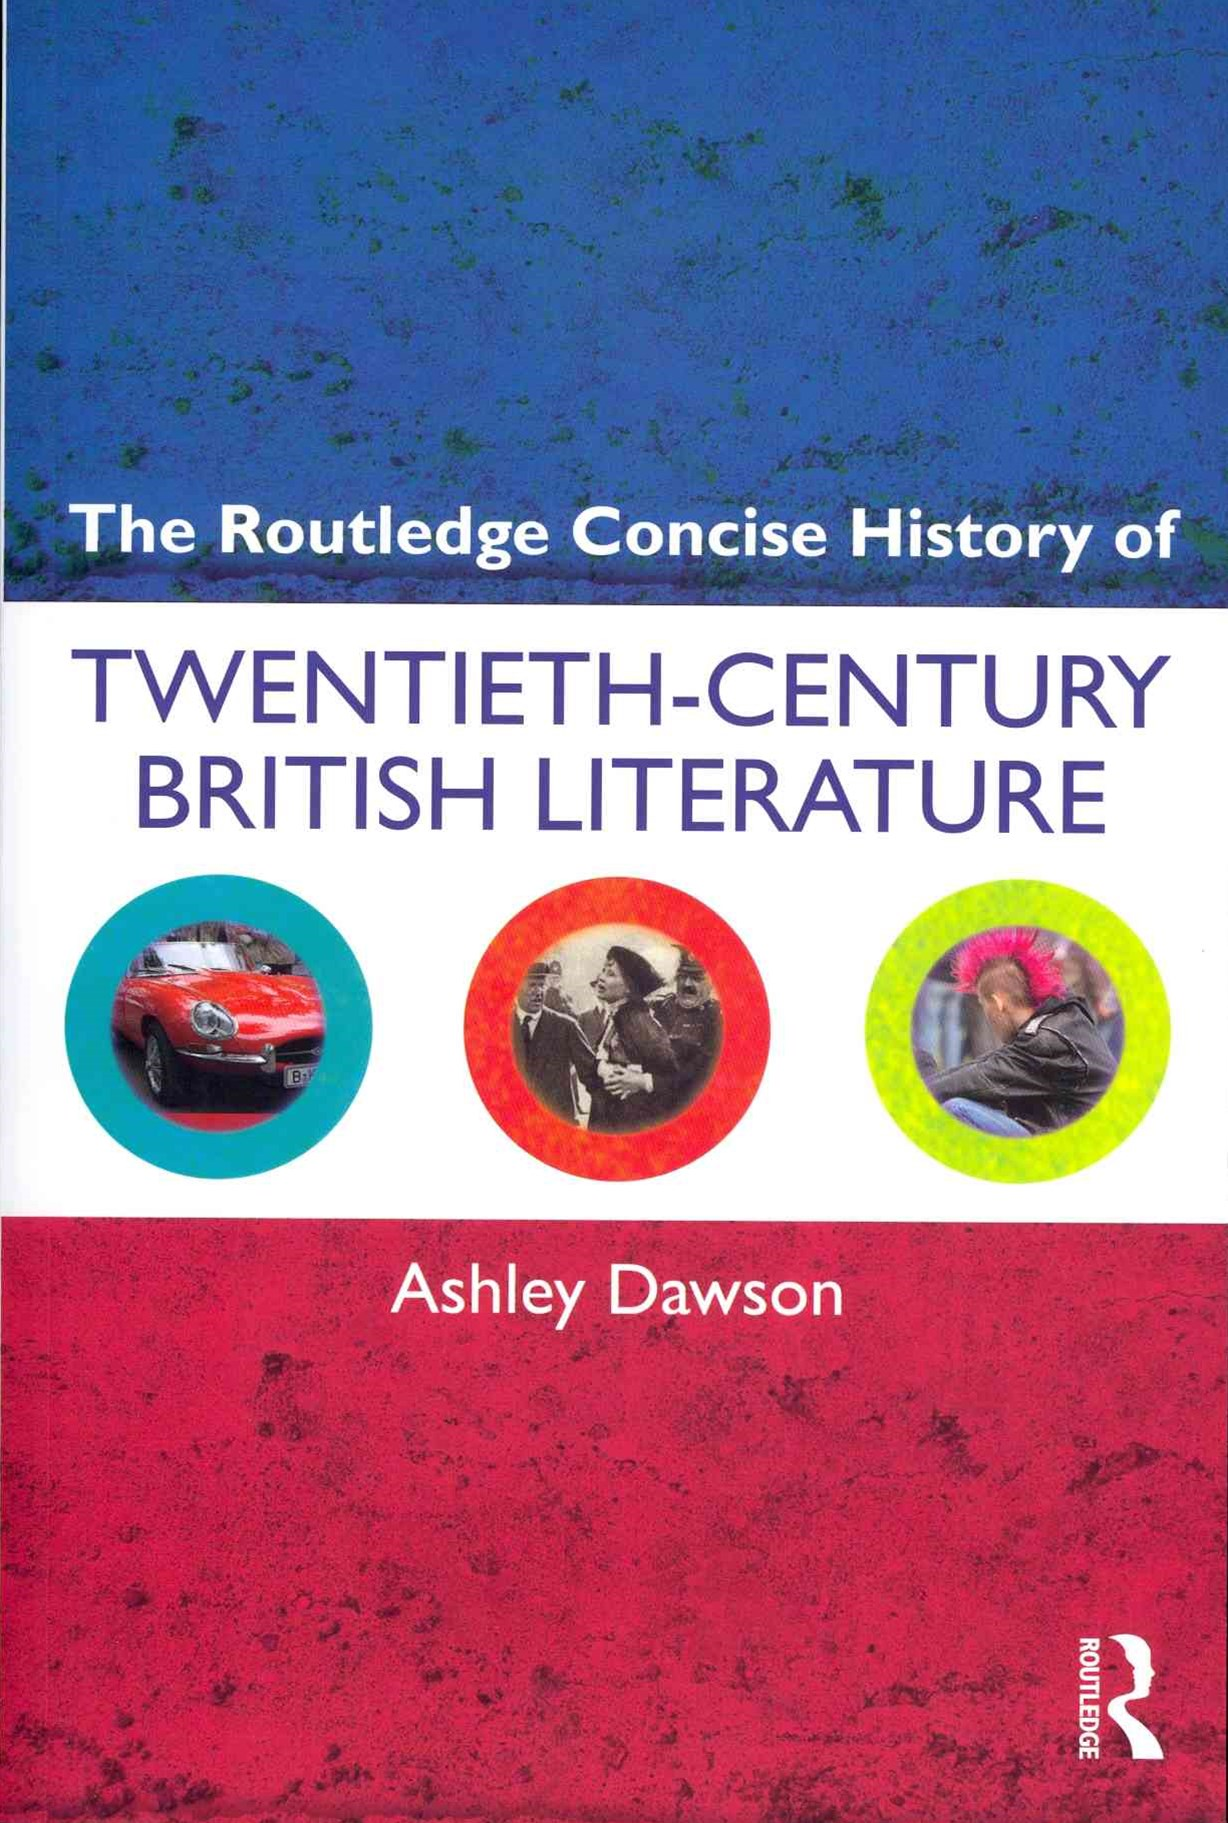 Routledge Concise History of Twentieth-Century British Literature